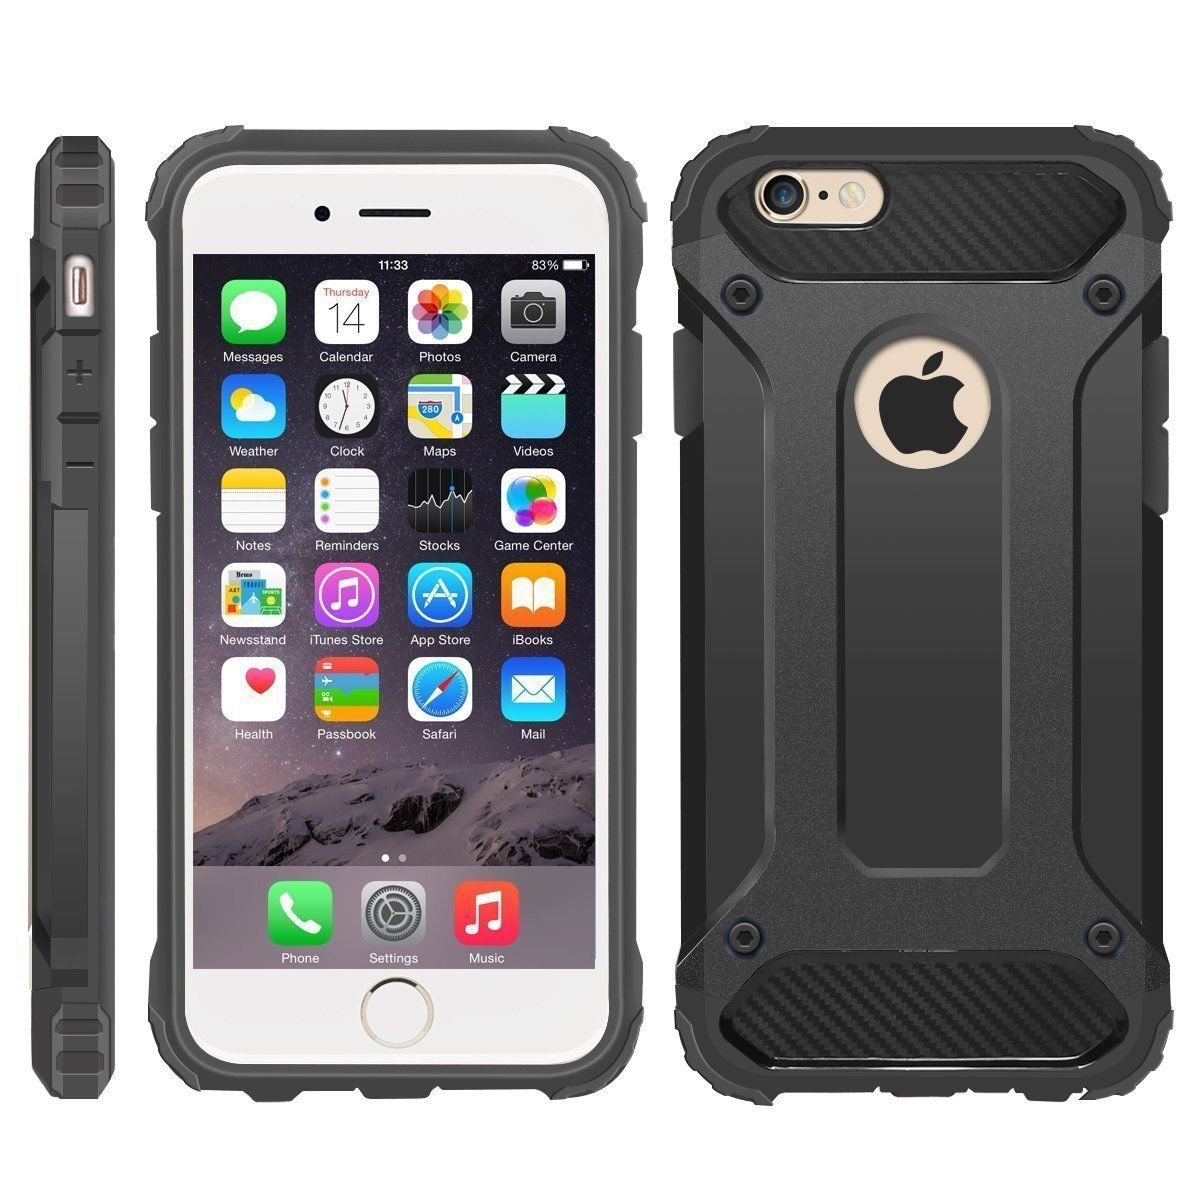 iPhone 6 Case, iPhone 6S Cover, Military-Duty Case – Impact Resistant Hybrid Heavy Duty [armor case] Dual Layer Armor Hard Plastic And Bumper Protective [SHOCKPROOF] Case